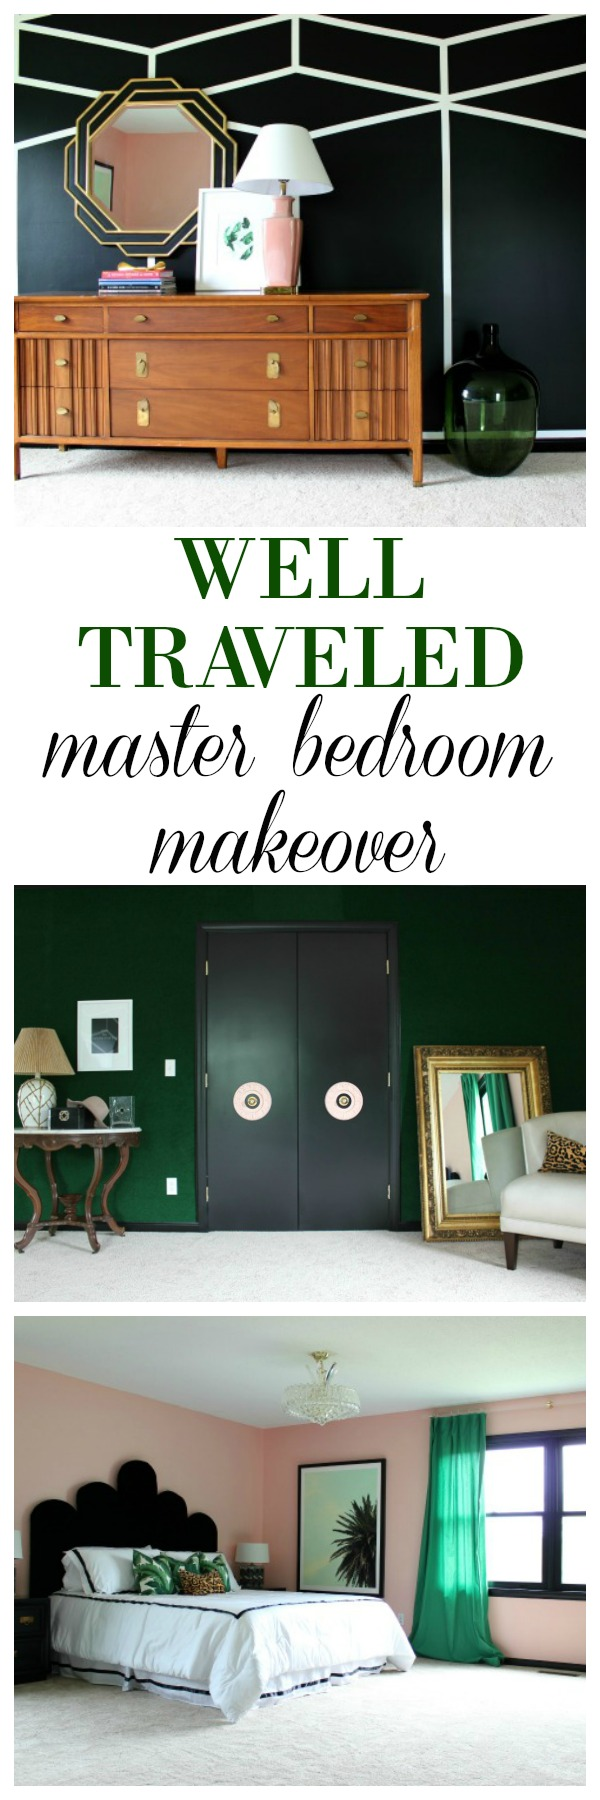 Well Traveled Master Bedroom Makeover Reveal - DO NOT miss this master bedroom! It combines bold black and white, a touch of green, pink and a dash of Palm Beach! STUNNING! Lots of great DIY project ideas for bedrooms in this article!